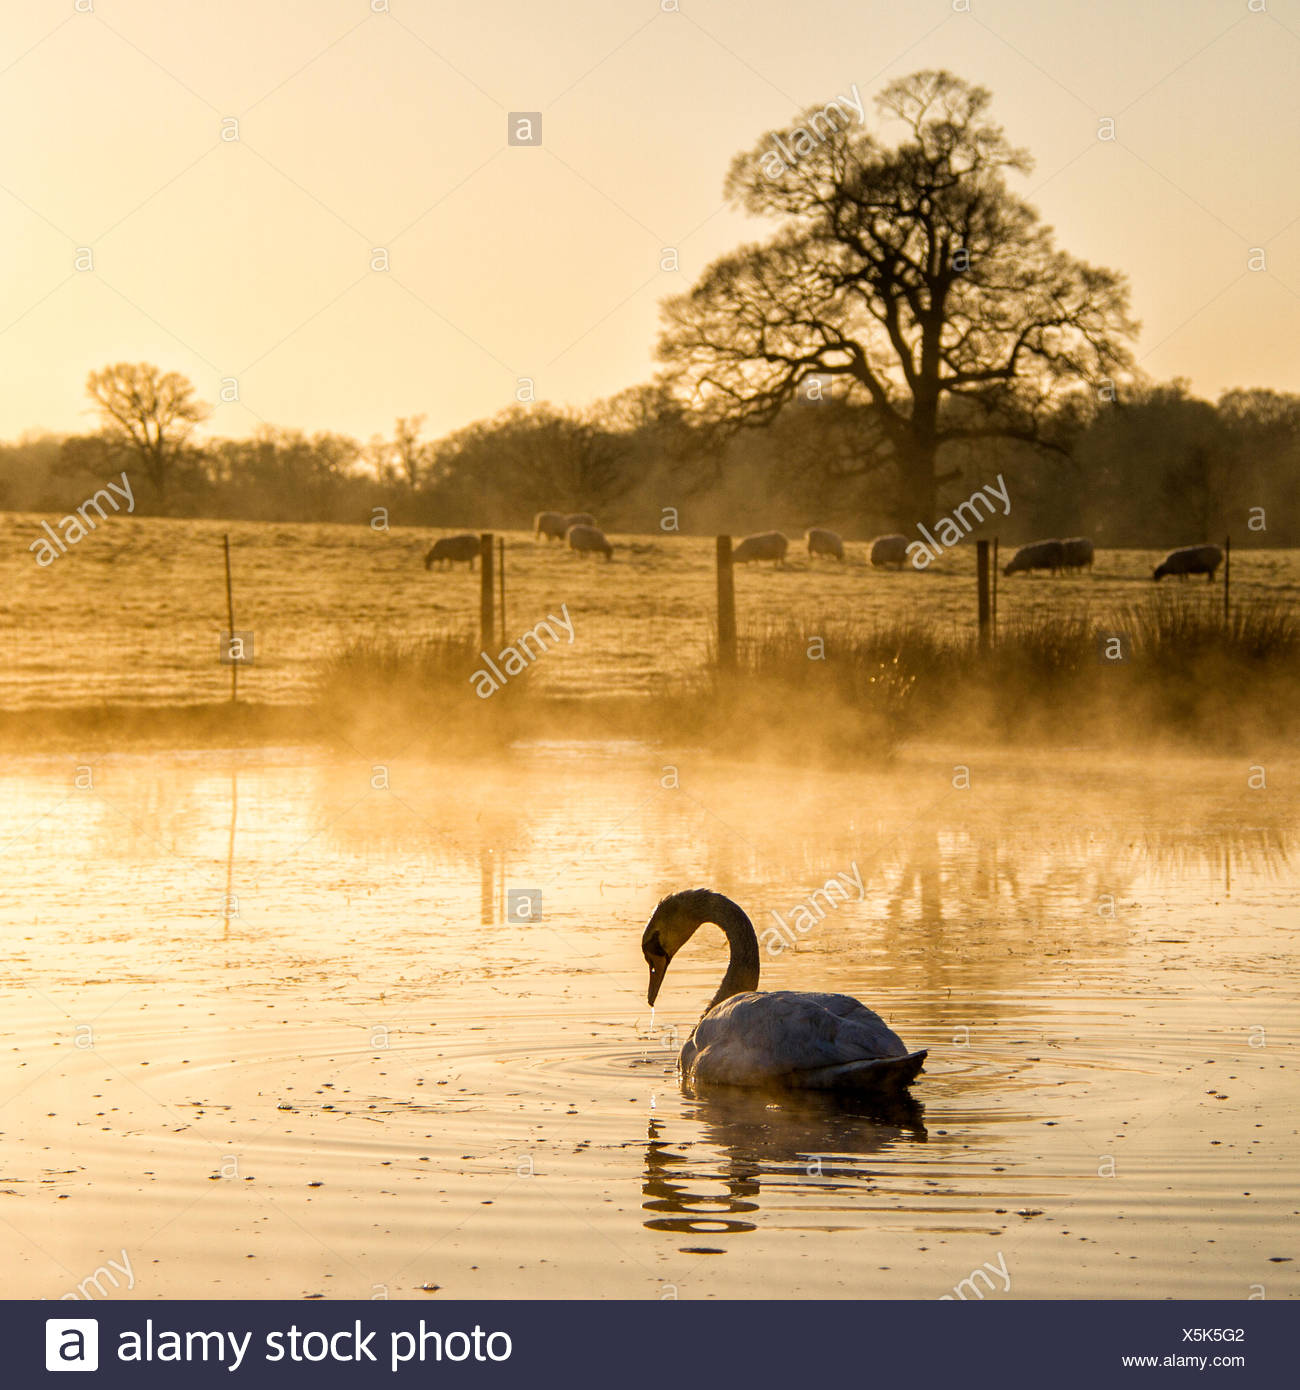 Lake and swan on foreground and sheeps on meadow in background - Stock Image